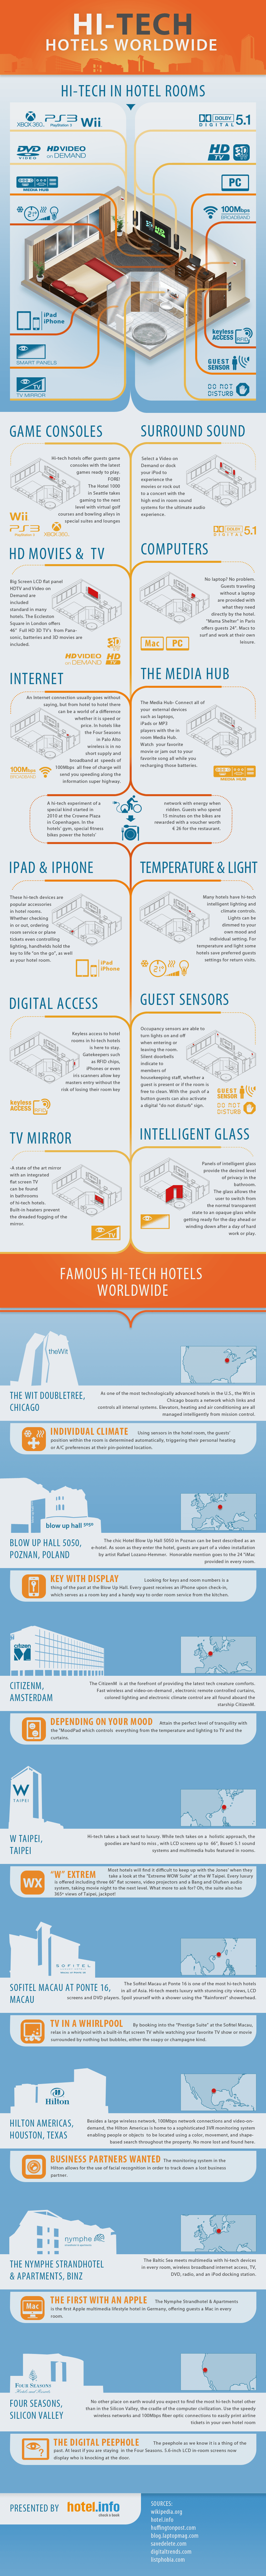 Hi-Tech Hotels Worldwide